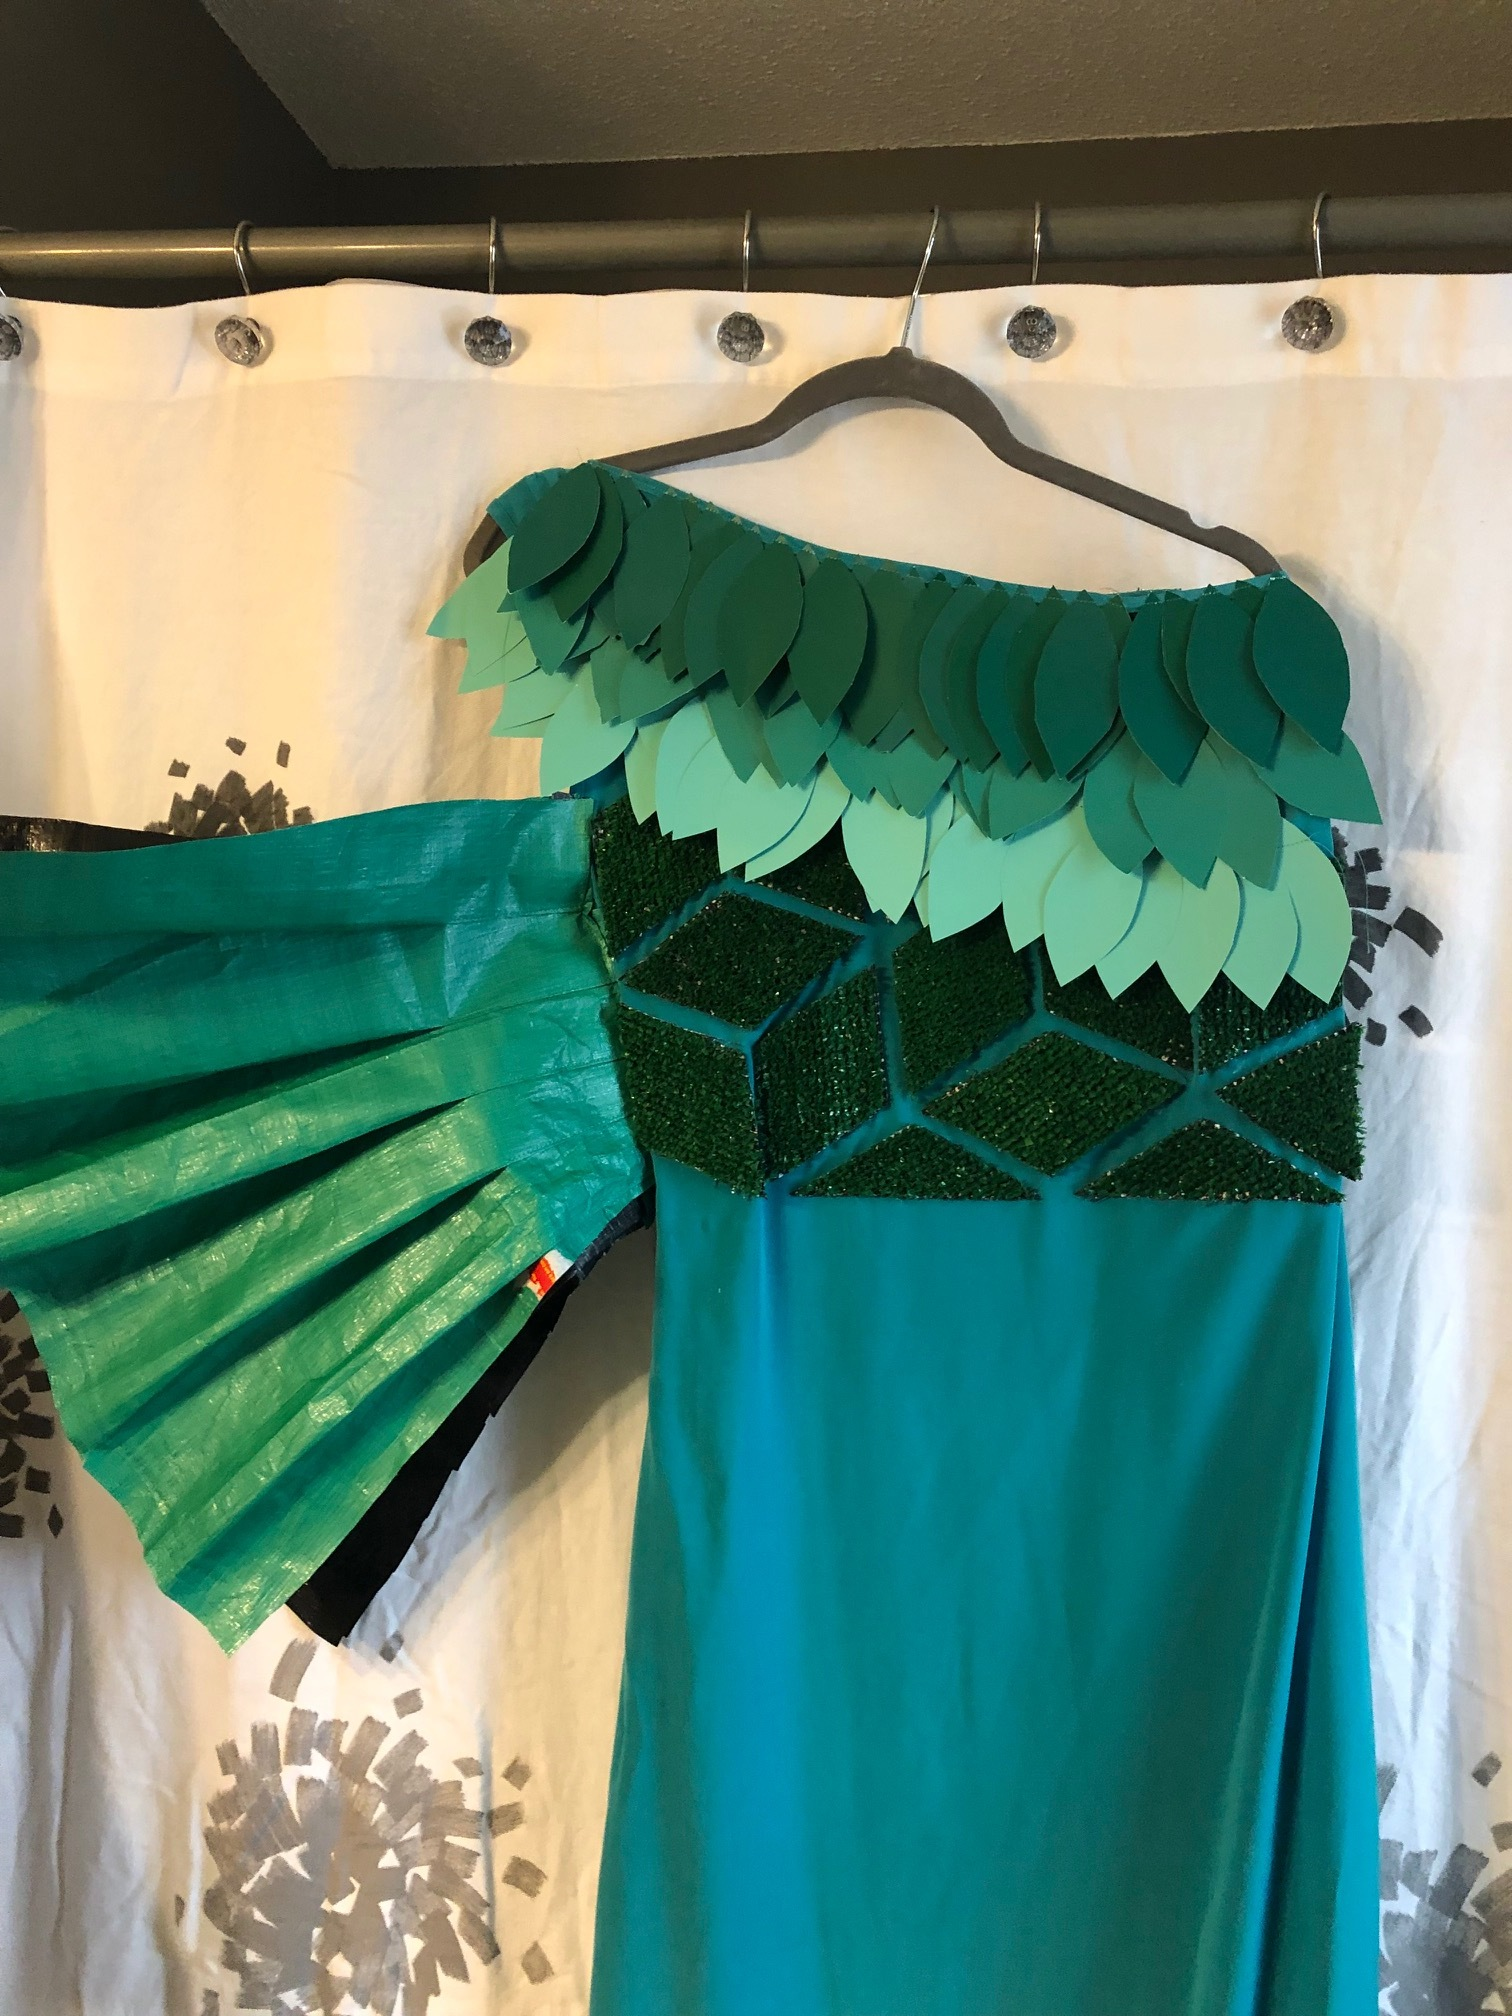 One ruffle sleeve was made from two pieces of accordion-folded green tarp.